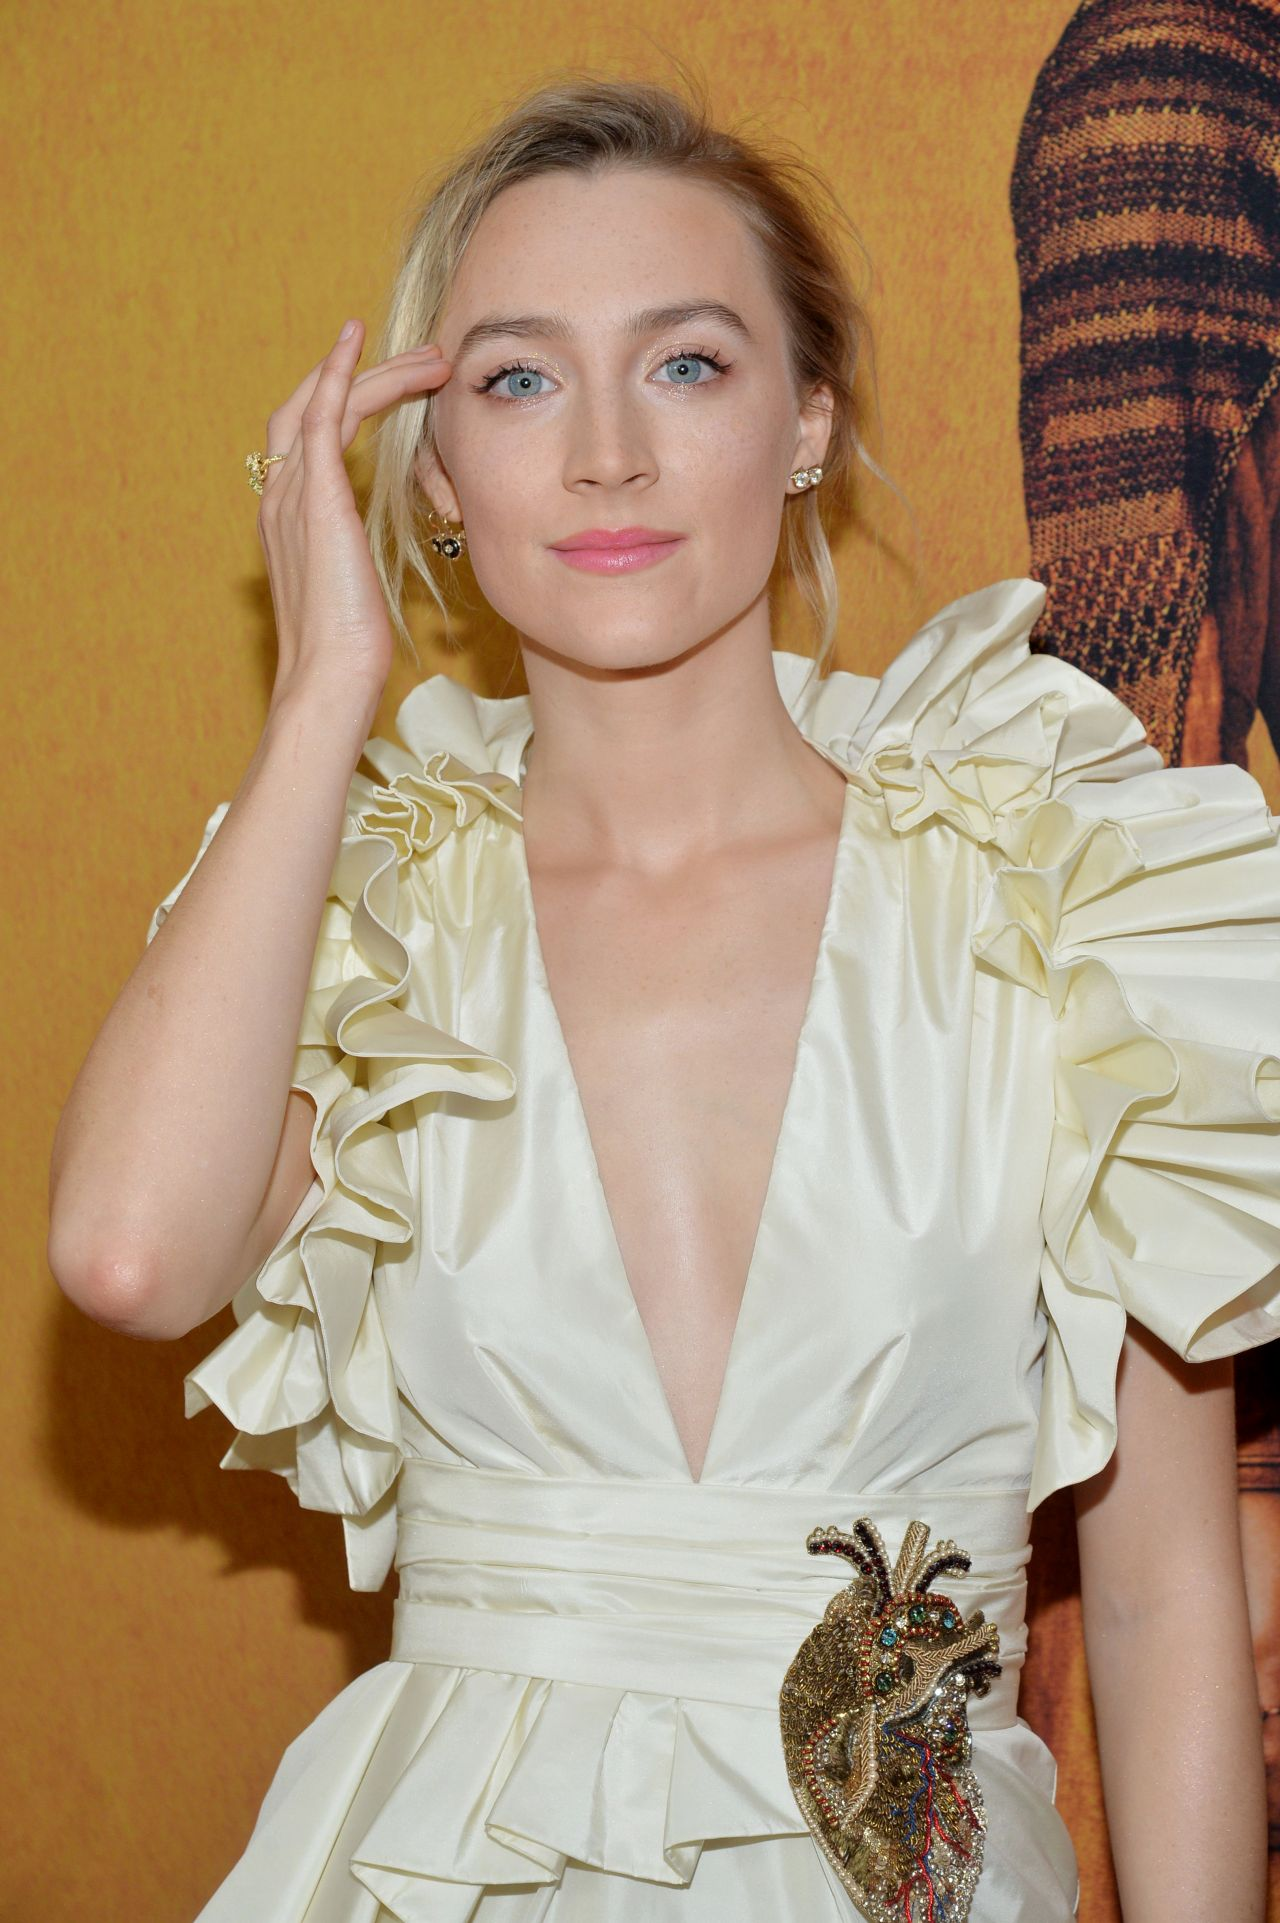 https://celebmafia.com/wp-content/uploads/2018/12/saoirse-ronan-mary-queen-of-scots-premiere-in-ny-5.jpg